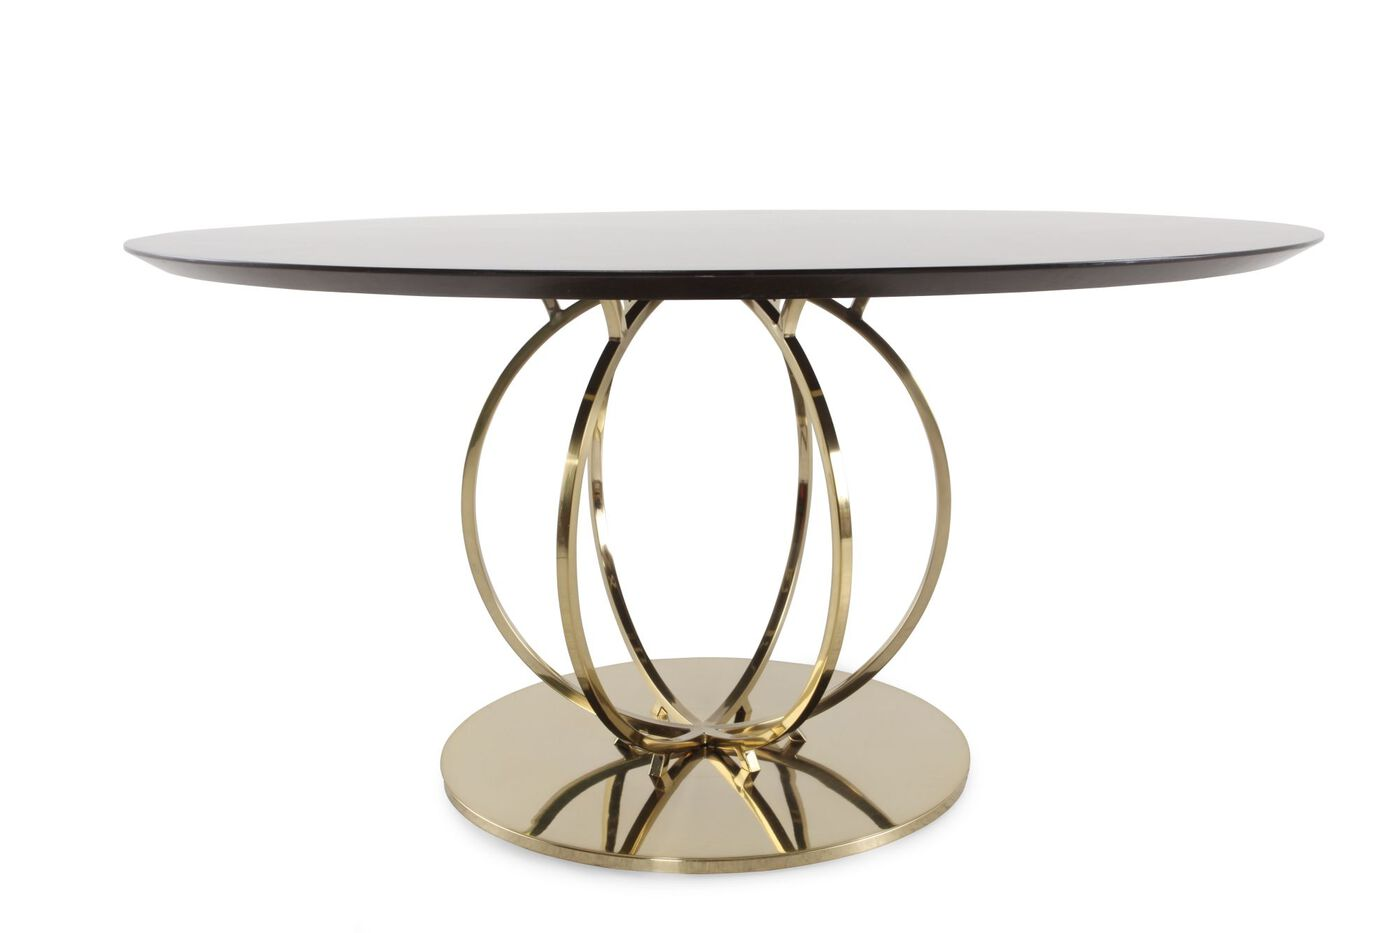 Bernhardt Jet Set Round Dining Table Mathis Brothers  : BHT 3565E0477715E047772 from www.mathisbrothers.com size 1400 x 933 jpeg 48kB